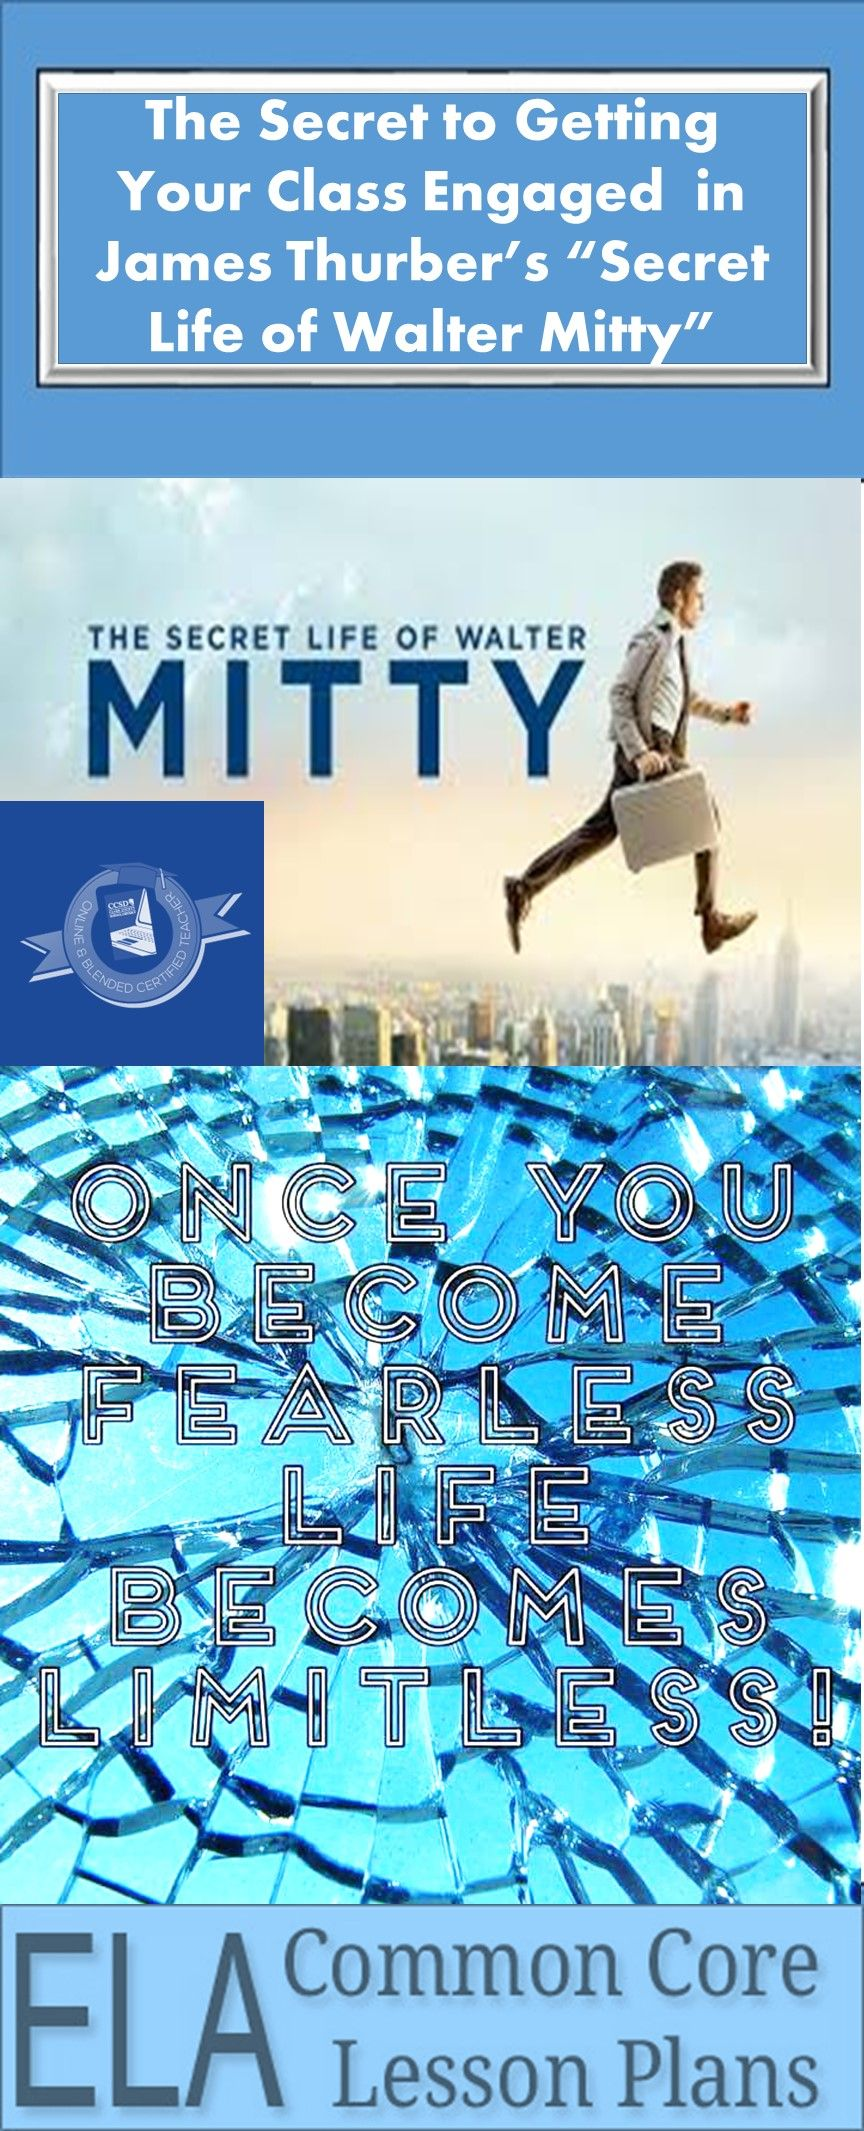 Importance Of English Language Essay Love This Secret Life Of Walter Mitty Lesson Plan Love The Story Love  How It Uses Technology Writing Essay Papers also How To Write An Essay Proposal Example Love This Secret Life Of Walter Mitty Lesson Plan Love The Story  Purpose Of Thesis Statement In An Essay